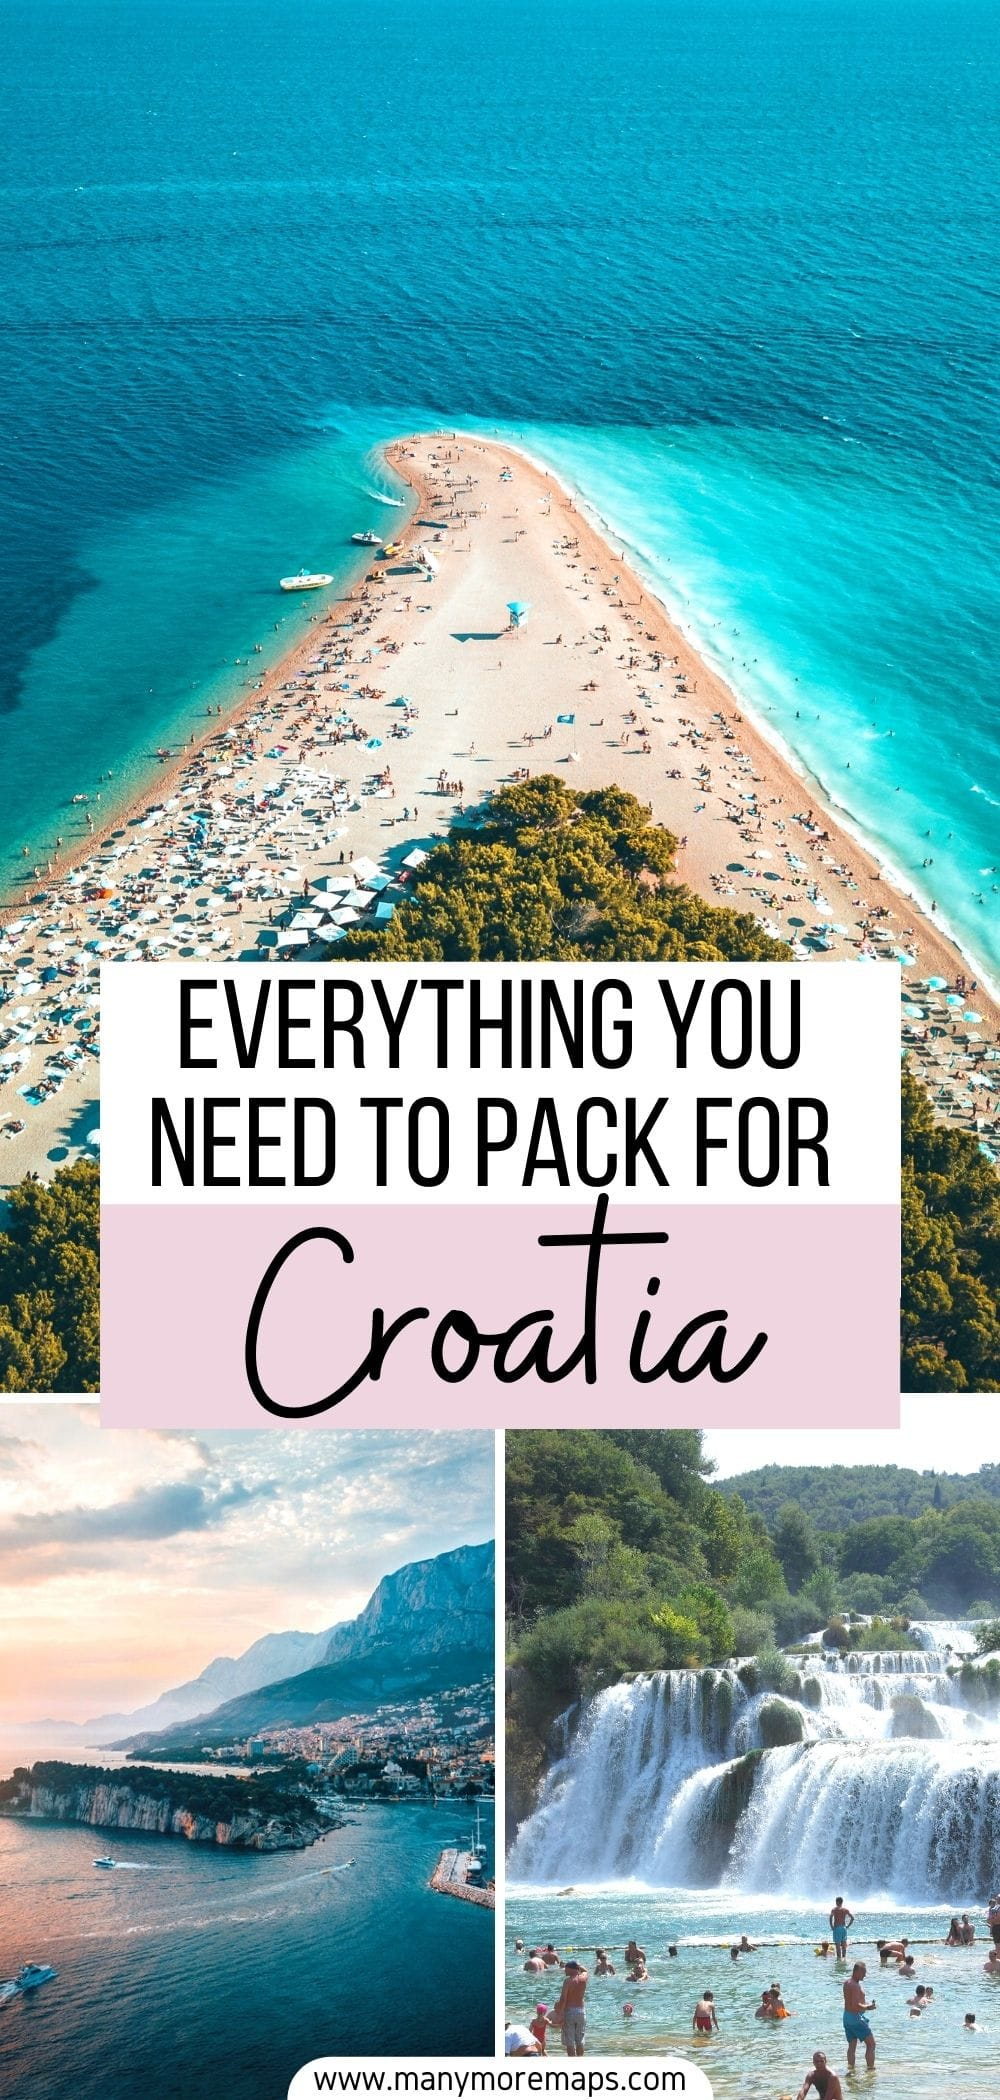 Planning a trip to Croatia and wanting to know what to pack? Check out my tried and tested Croatia packing list for women! I visited Croatia in summer and this packing list covers everything you could possibly need for travel to Croatia and go island hopping. I have also made a carry on packing list for Croatia. I'll answer all your questions on what to wear in Croatia what to pack for Croatia, what to bring to Croatia and share my travel tips